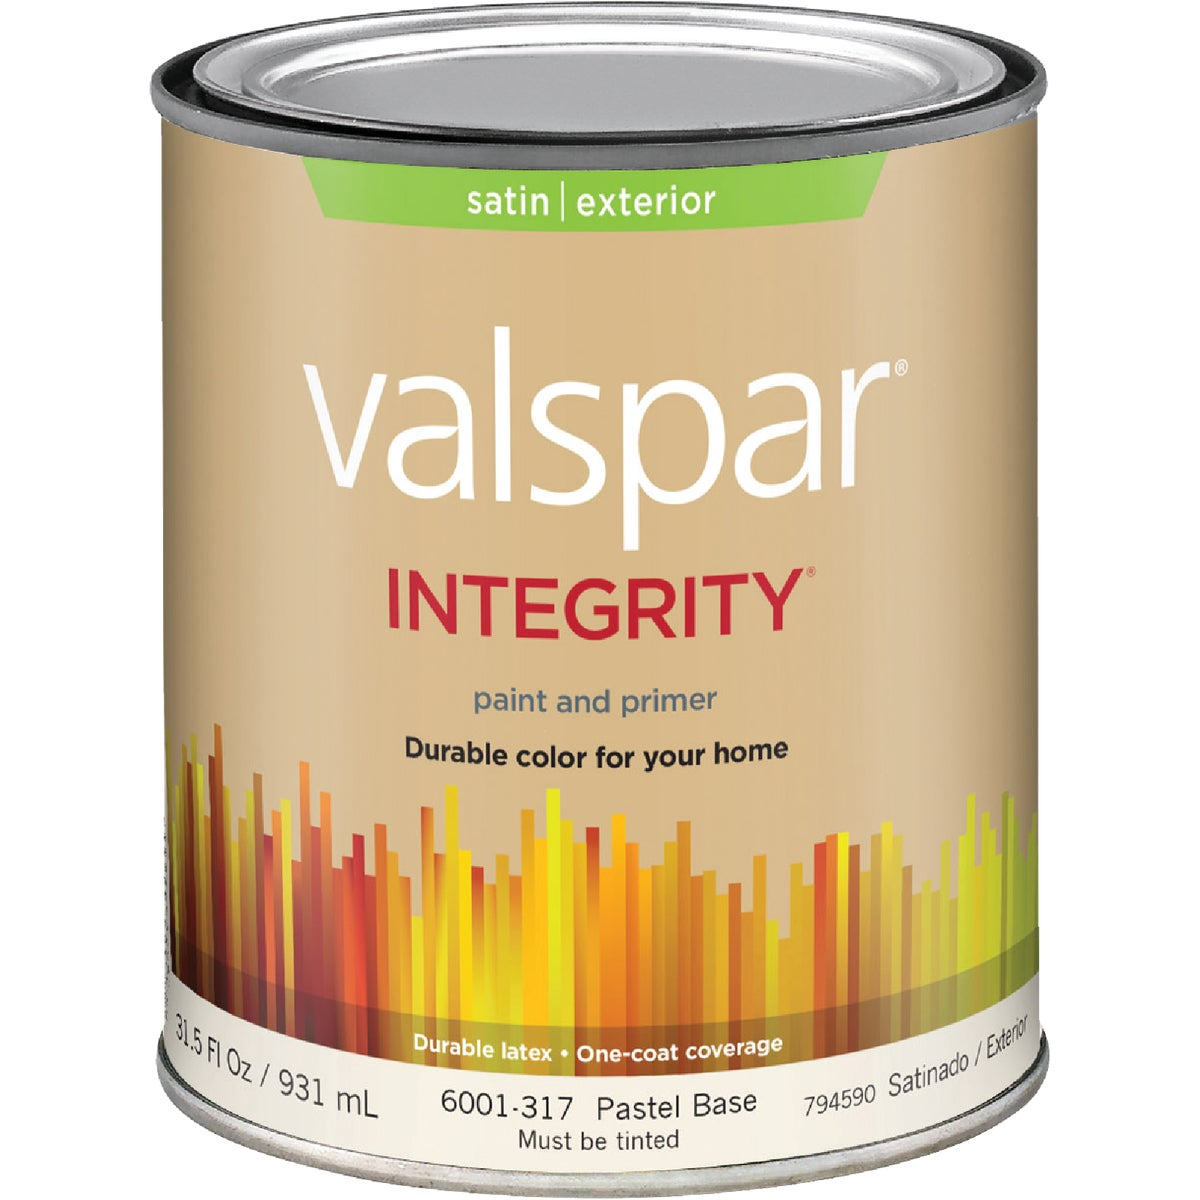 EXT SAT PASTEL BS PAINT - 004.6001317.005 by Valspar Corp